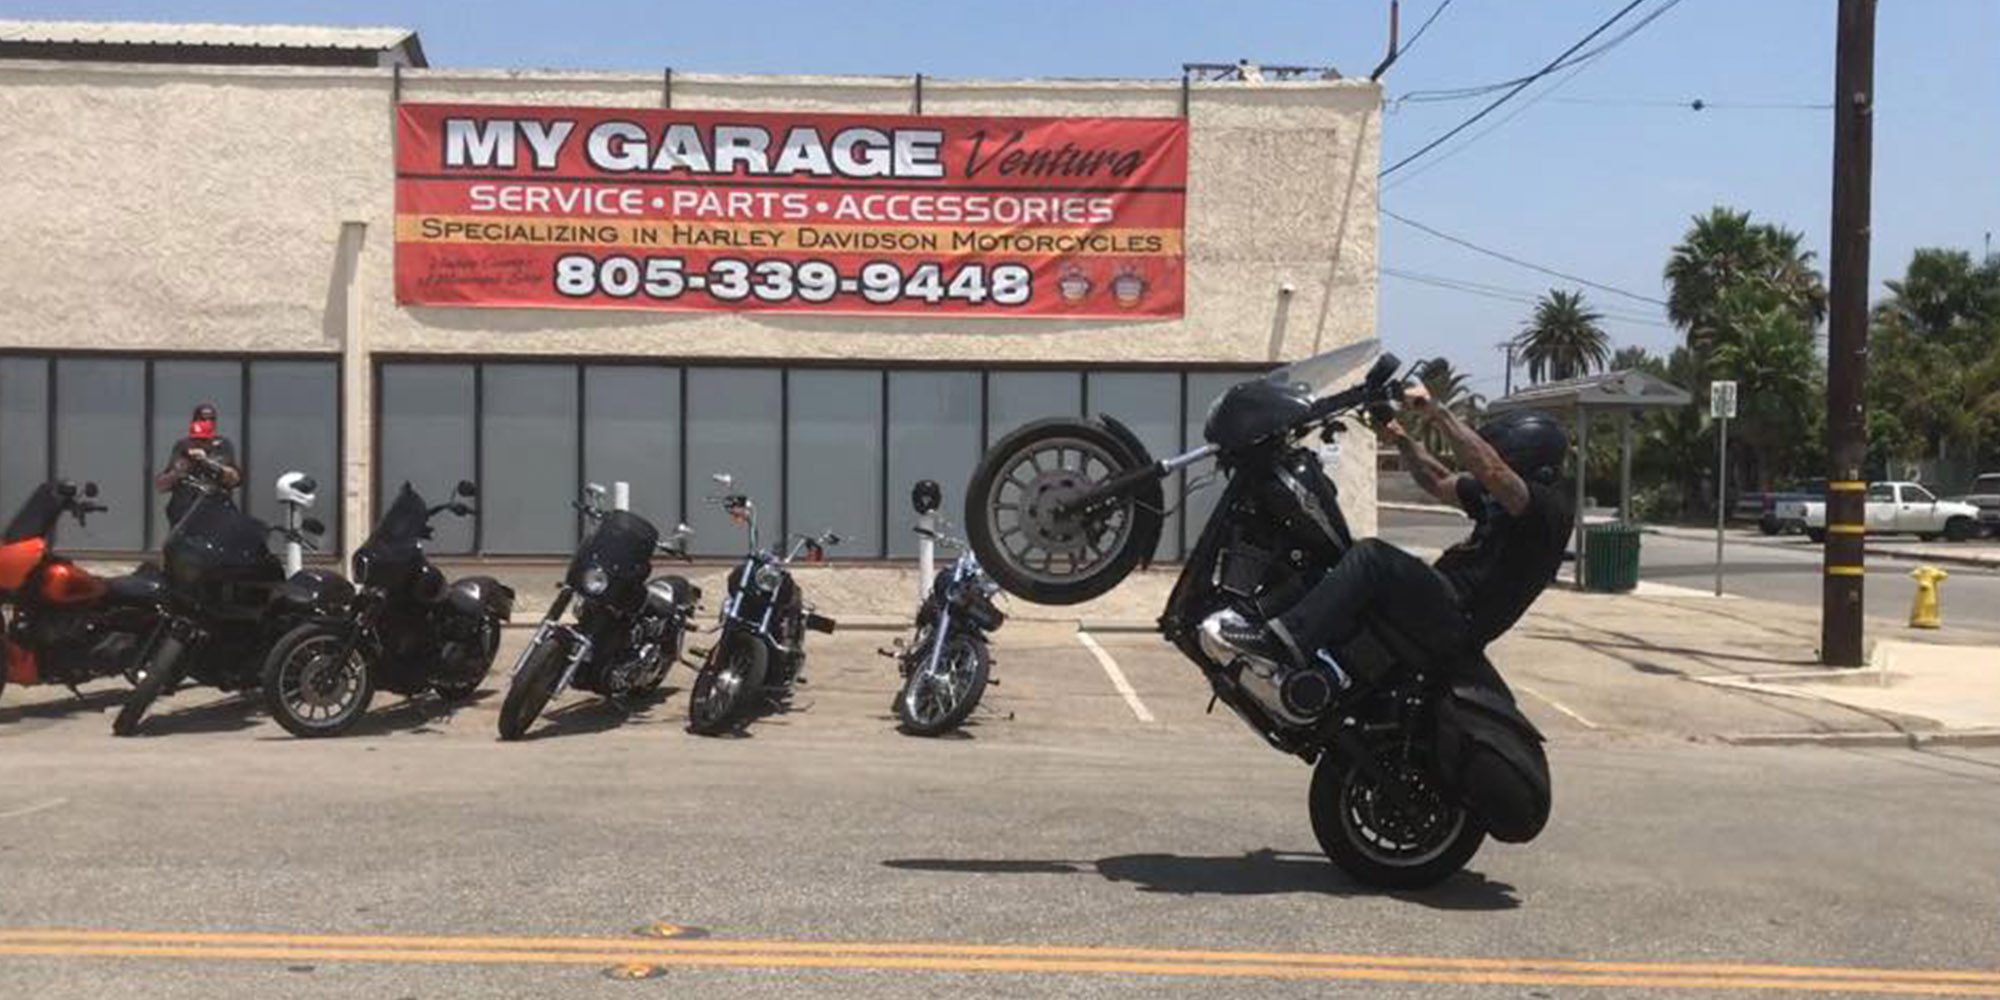 Motorcycle Repair, Maintenance, Sales at MyGarage Ventura